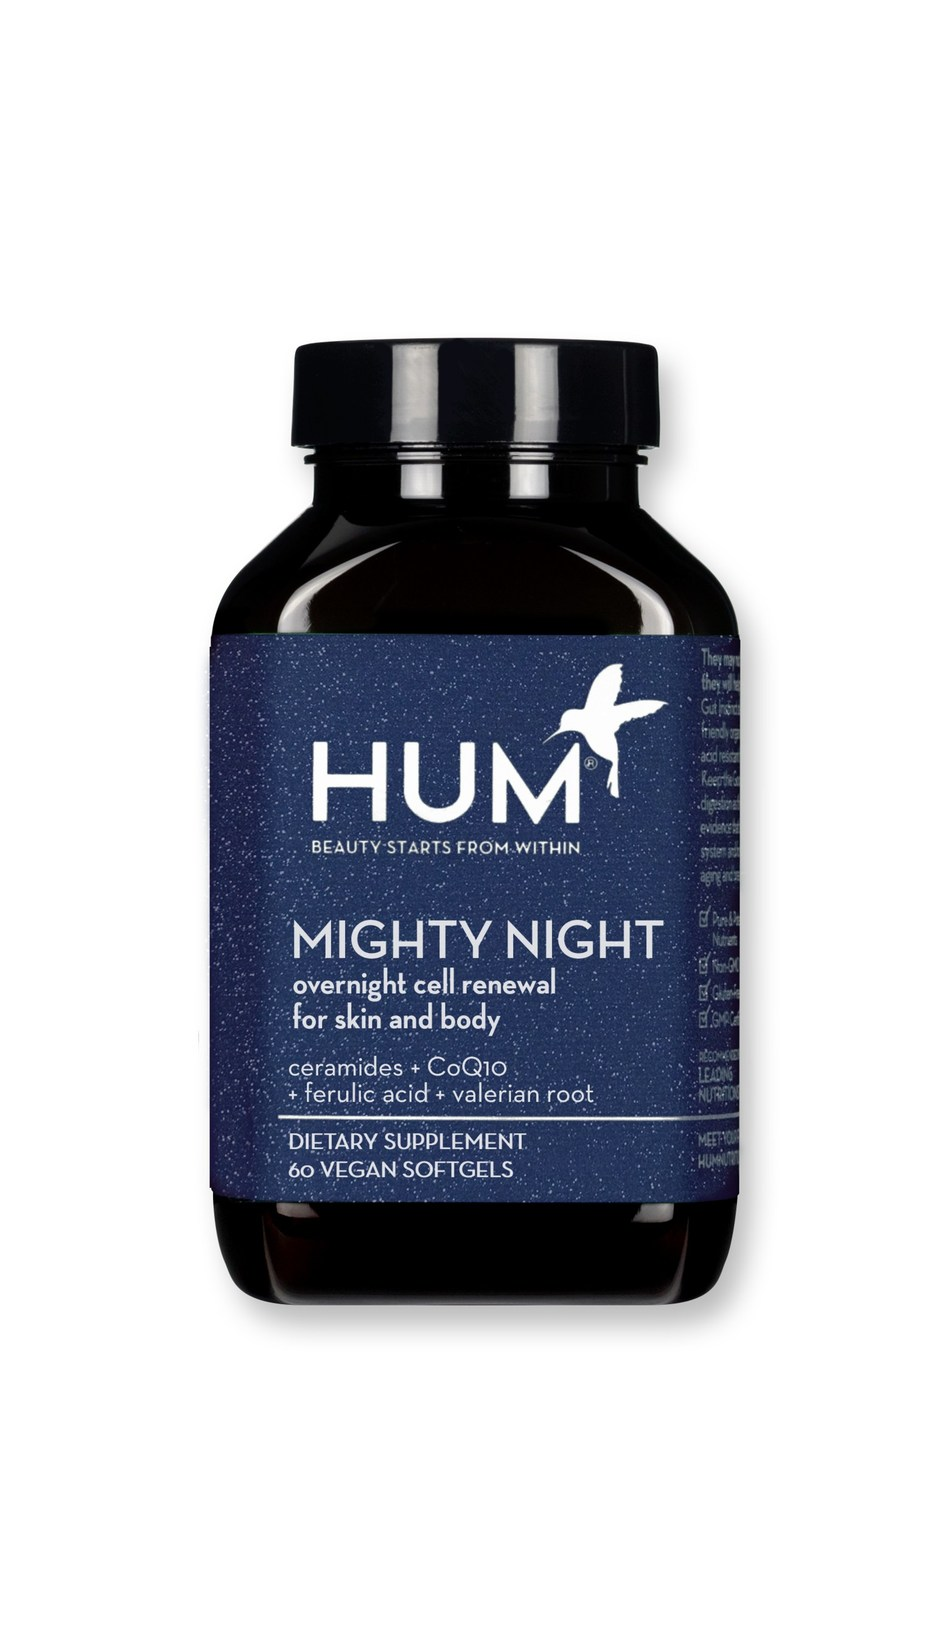 HUM Nutrition Mighty Night™, the first skin cell renewal supplement specifically formulated to optimize beauty sleep from within. Mighty Night ingredients include Ubiquinol, the most absorbable form of CoQ10 which protects the skin cell's membrane and supports overall renewal; Ceramides to lock in moisture and boost elasticity; Ferulic Acid proven to scavenge free radicals; and, a clinically studied combination of Valerian Root, Hops and Passion Flower that helps to promote optimal sleep.